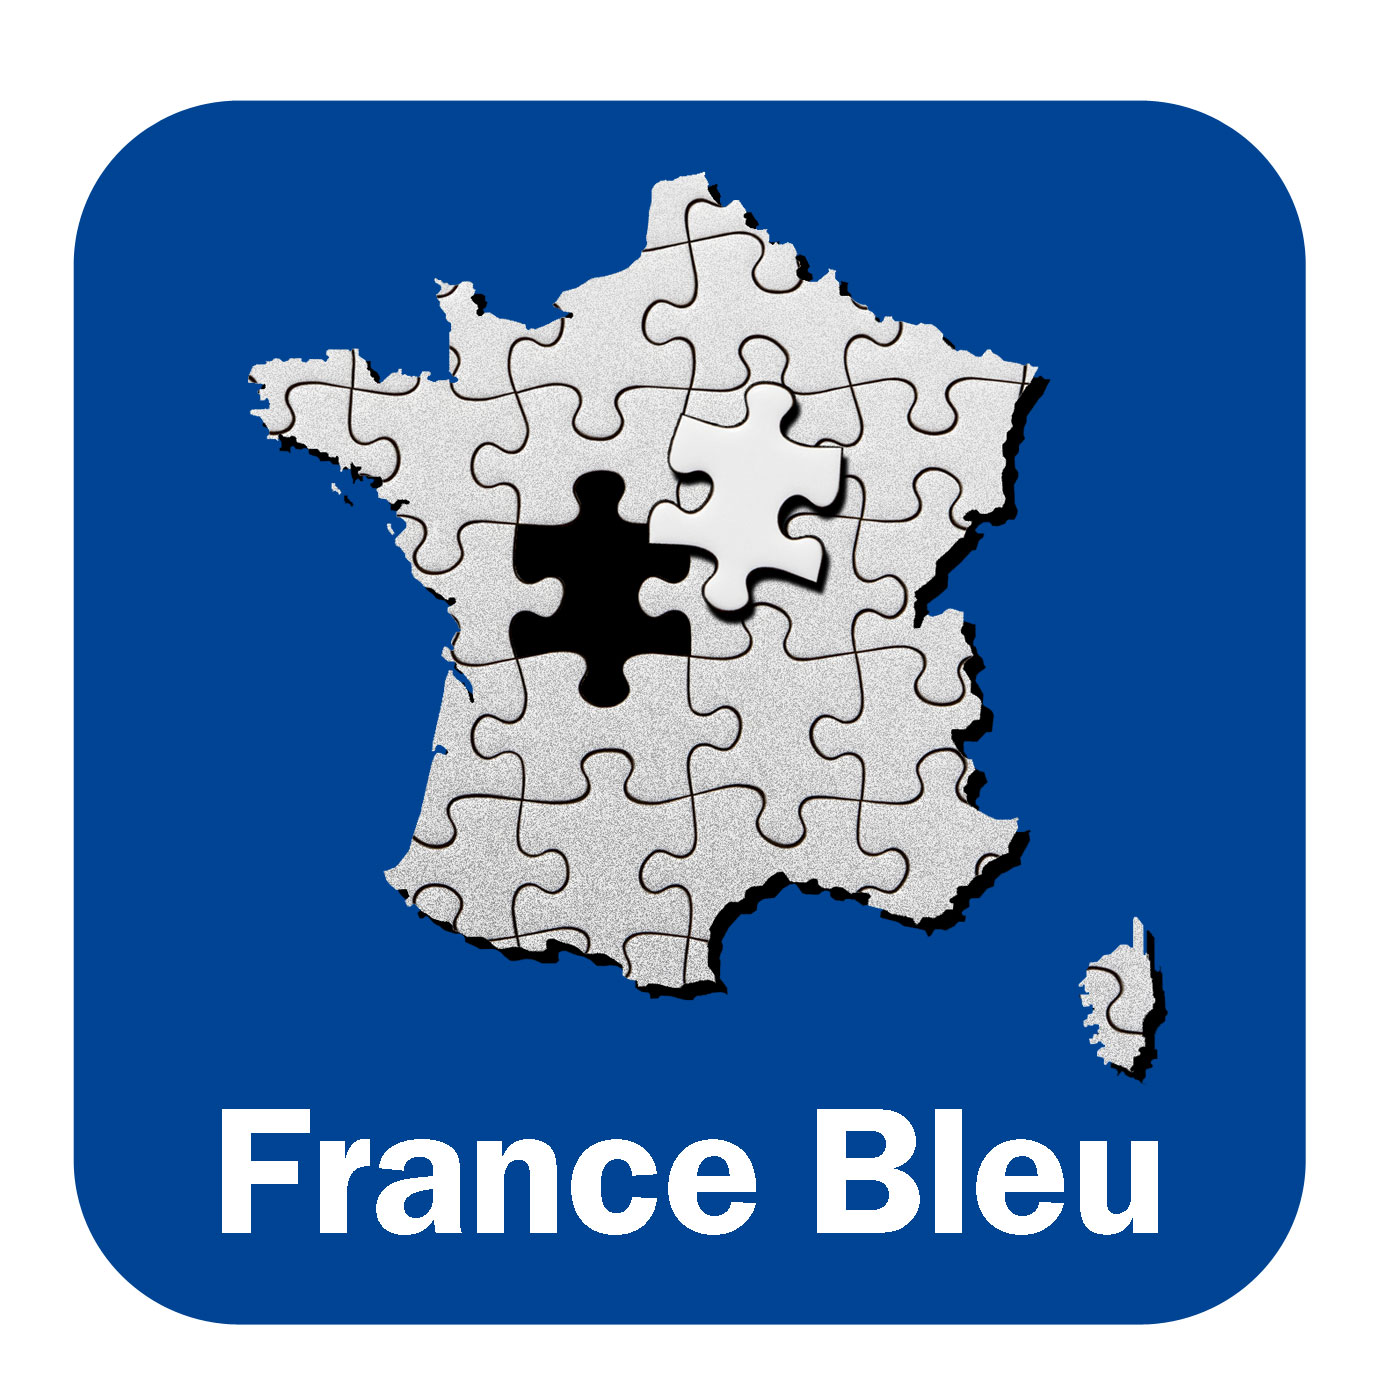 Made in Italy France Bleu Azur